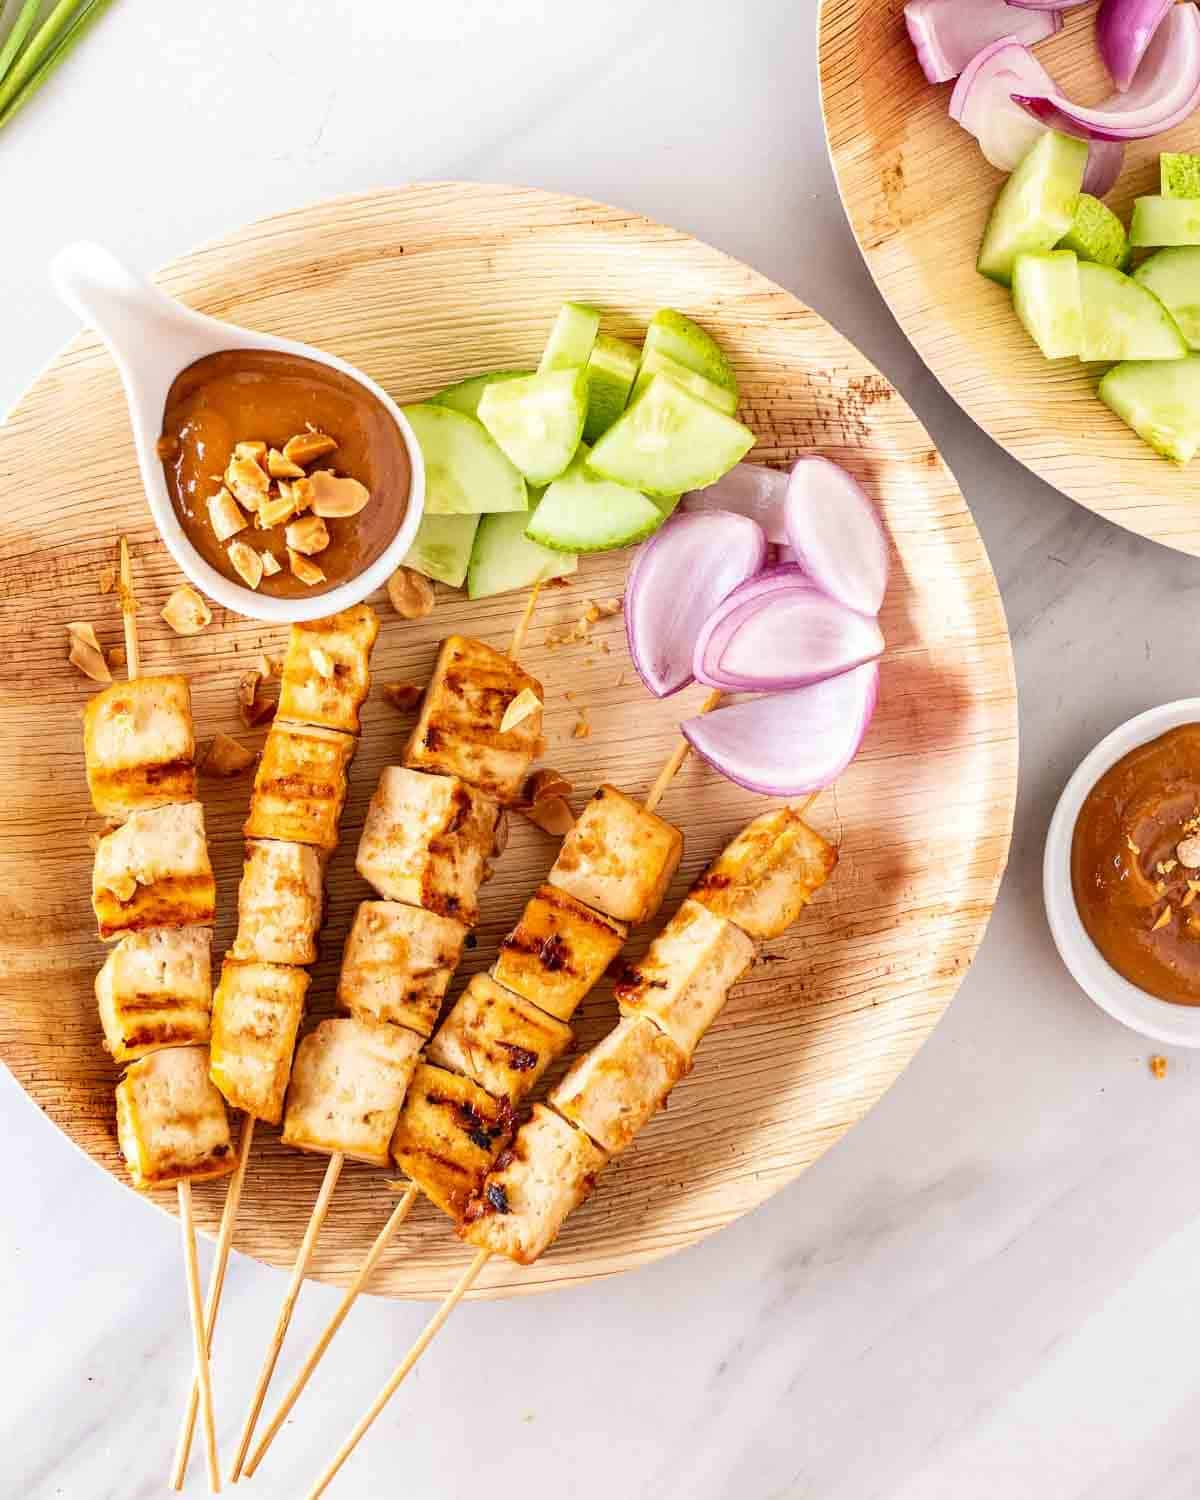 Satay skewers served with peanut sauce and chopped raw veggies in a brown plate.